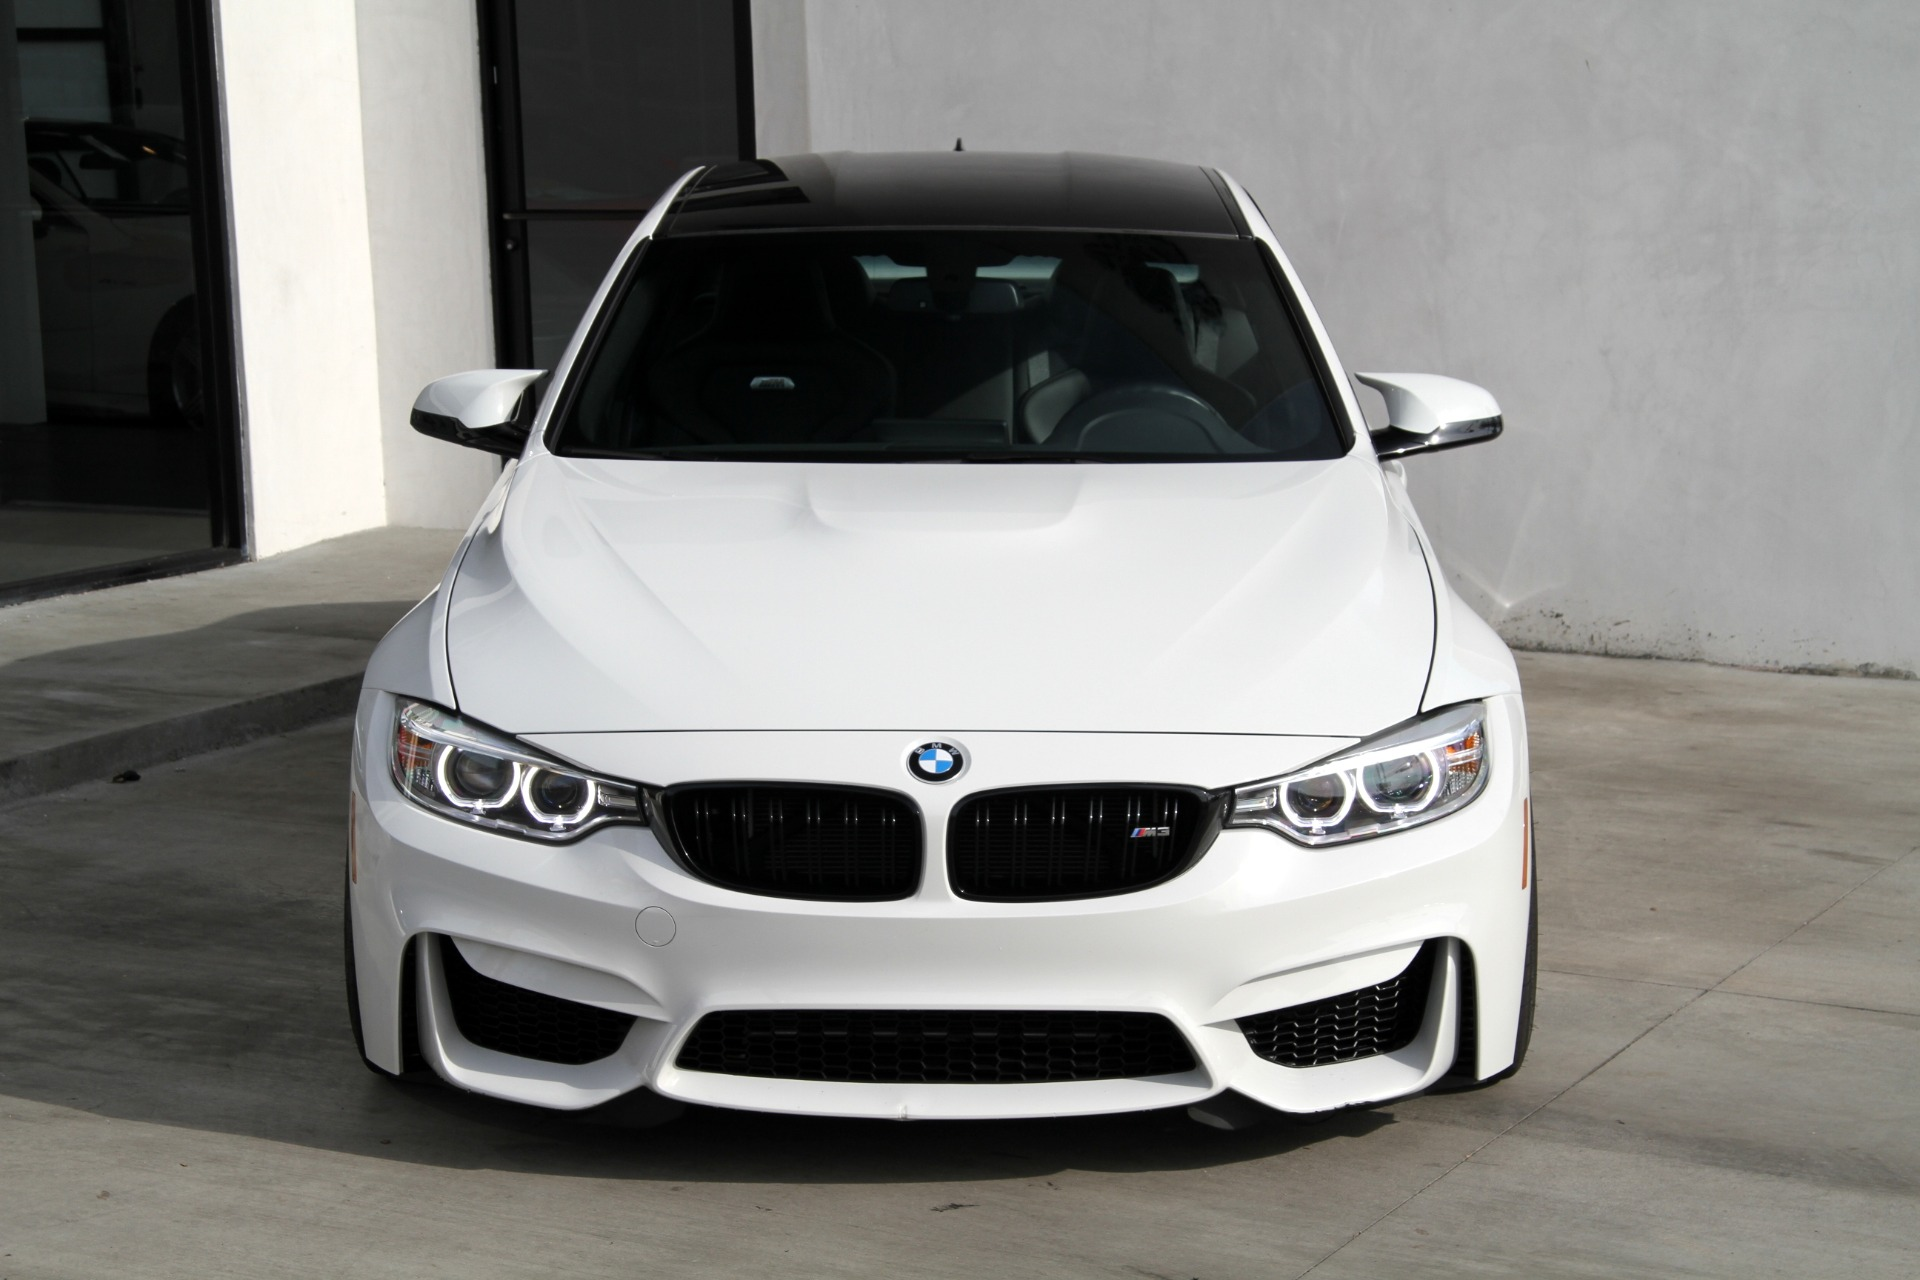 Wheels For Sale Near Me >> 2017 BMW M3 *** COMPETITION PACKAGE *** Stock # 6094 for sale near Redondo Beach, CA | CA BMW Dealer